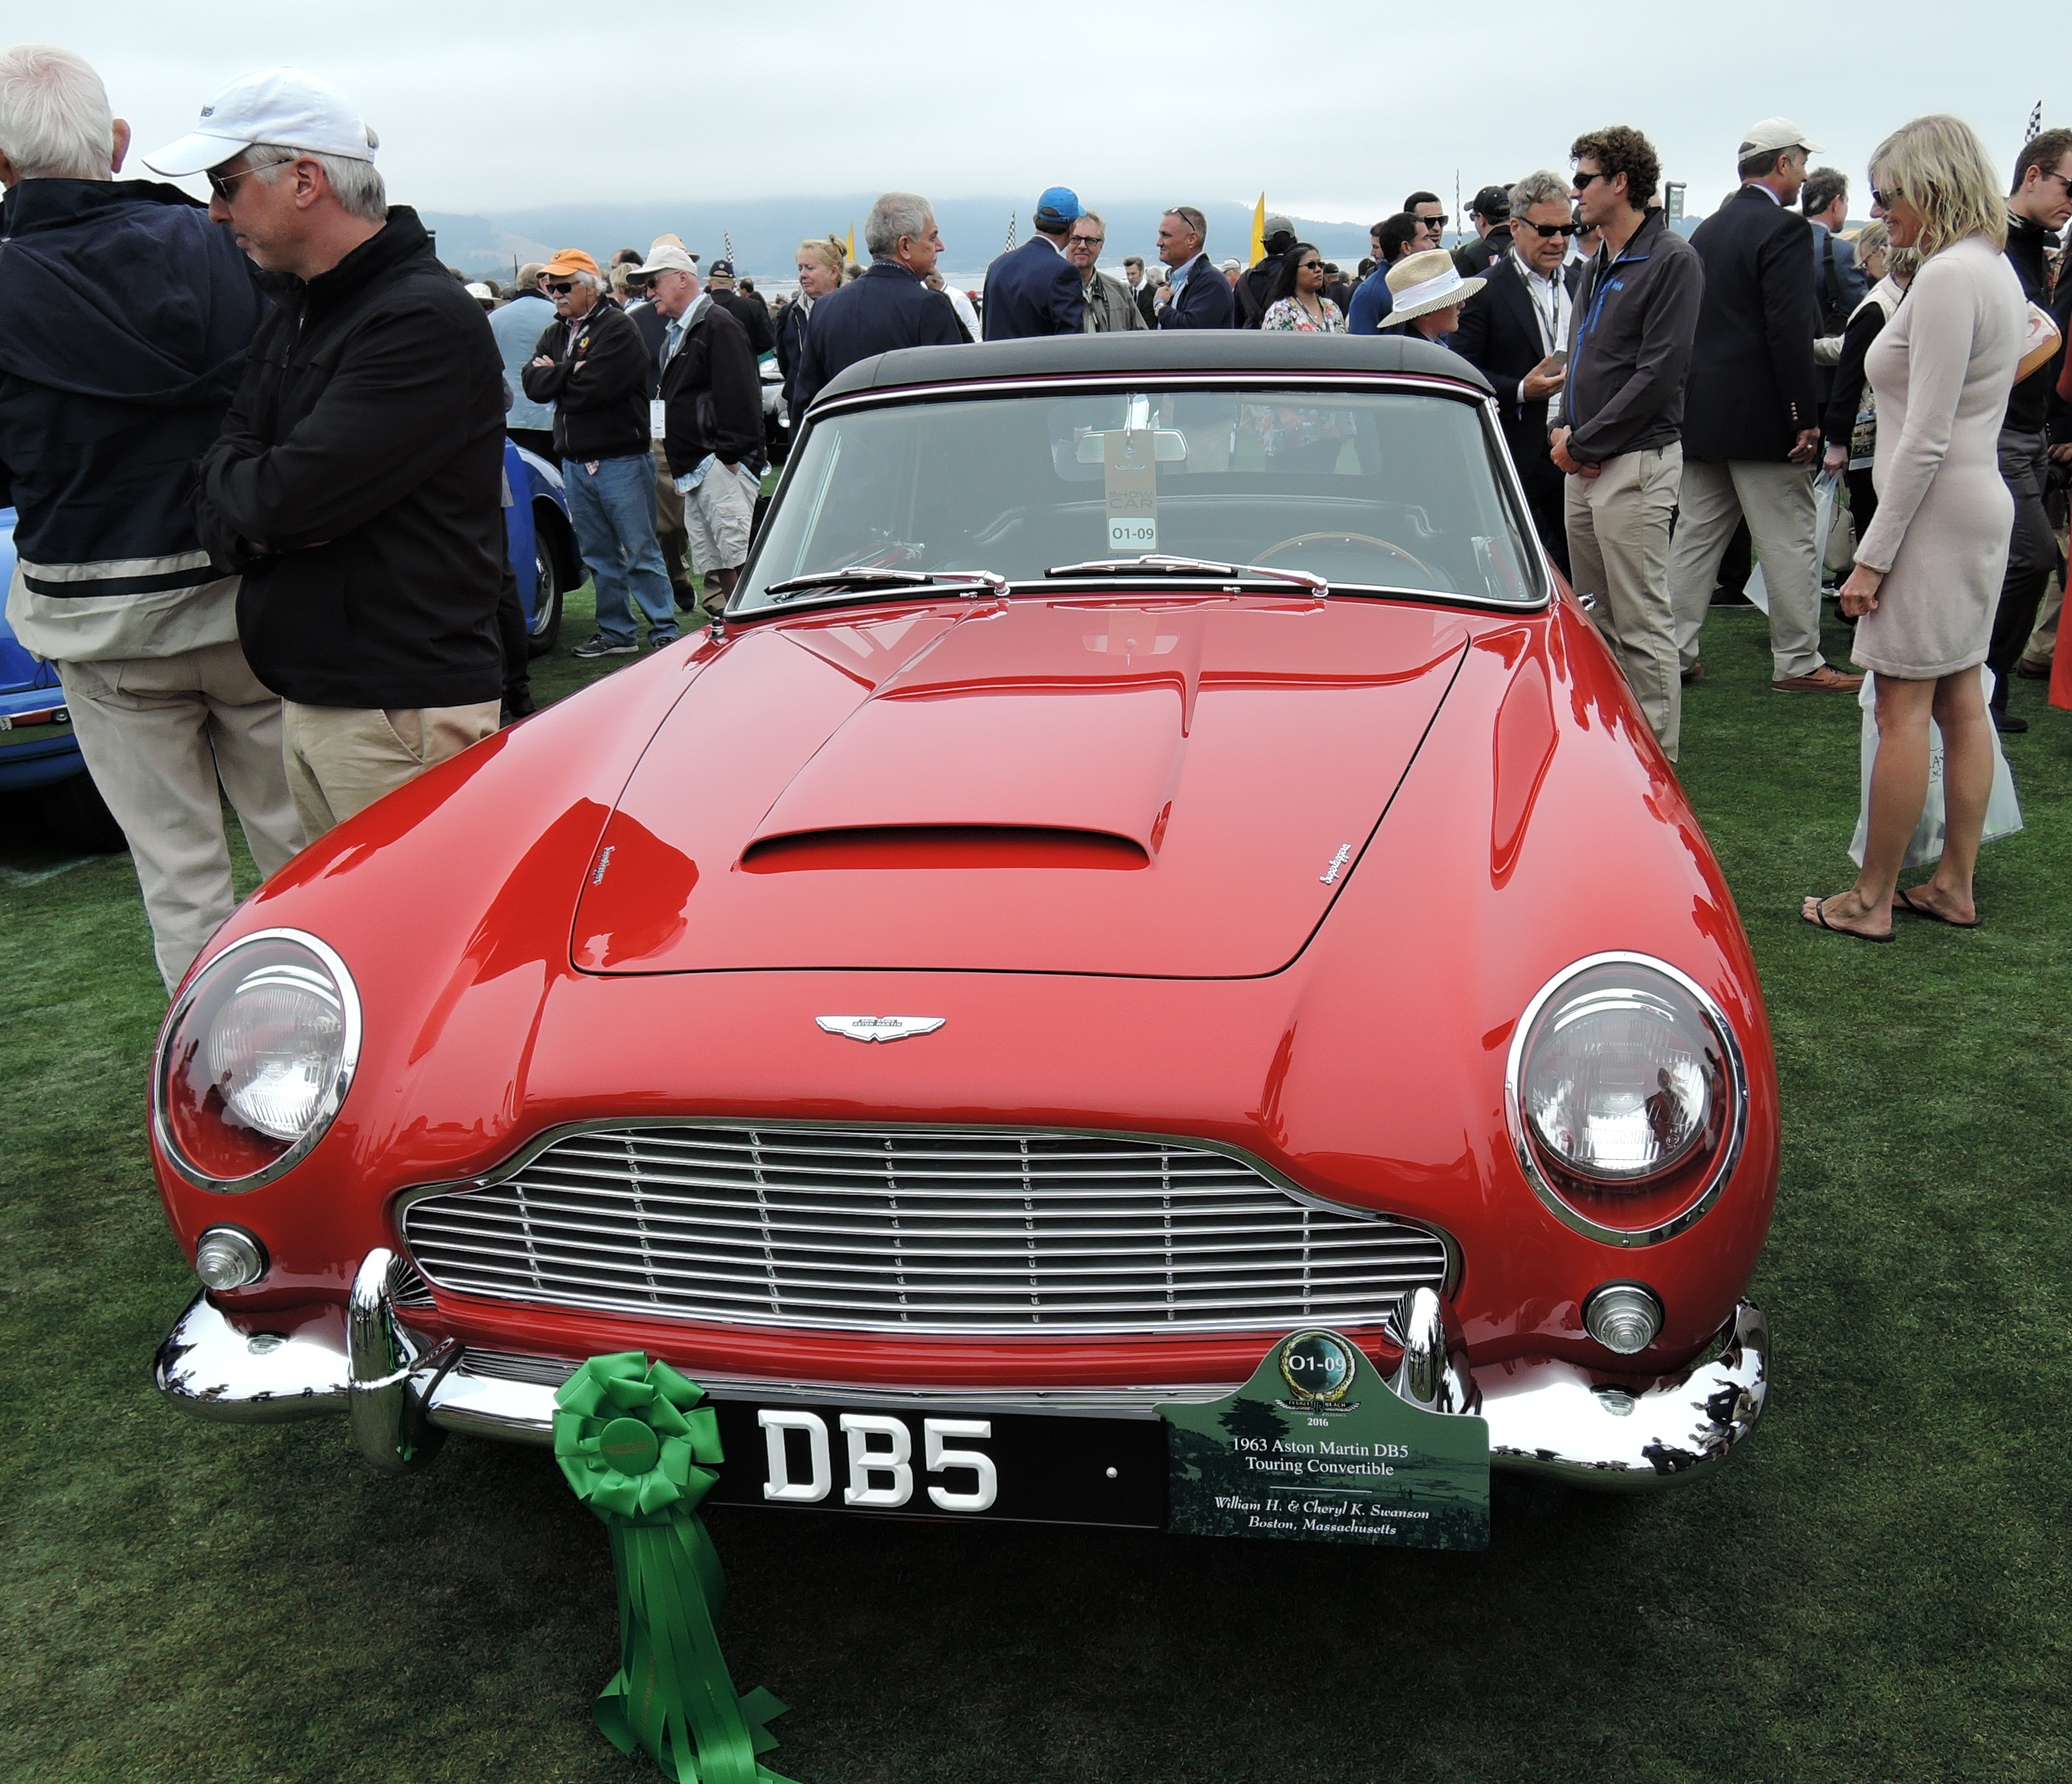 red 1963 Aston Martin DB5 Touring Convertible - Pebble Beach Concours d'Elegance 2016